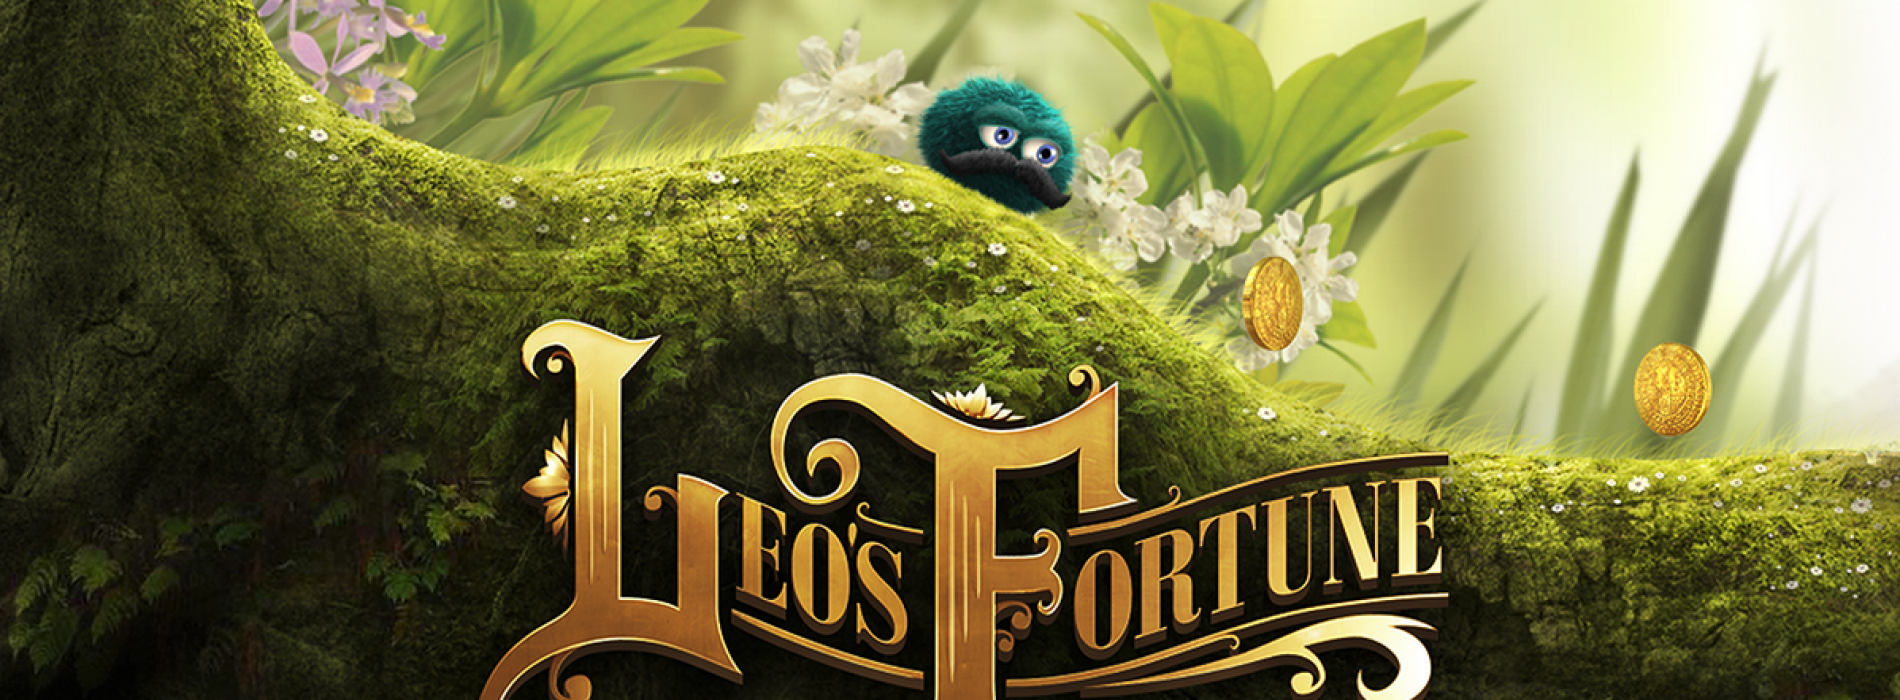 Recover your stolen gold in Leo's Fortune, now available on Google Play